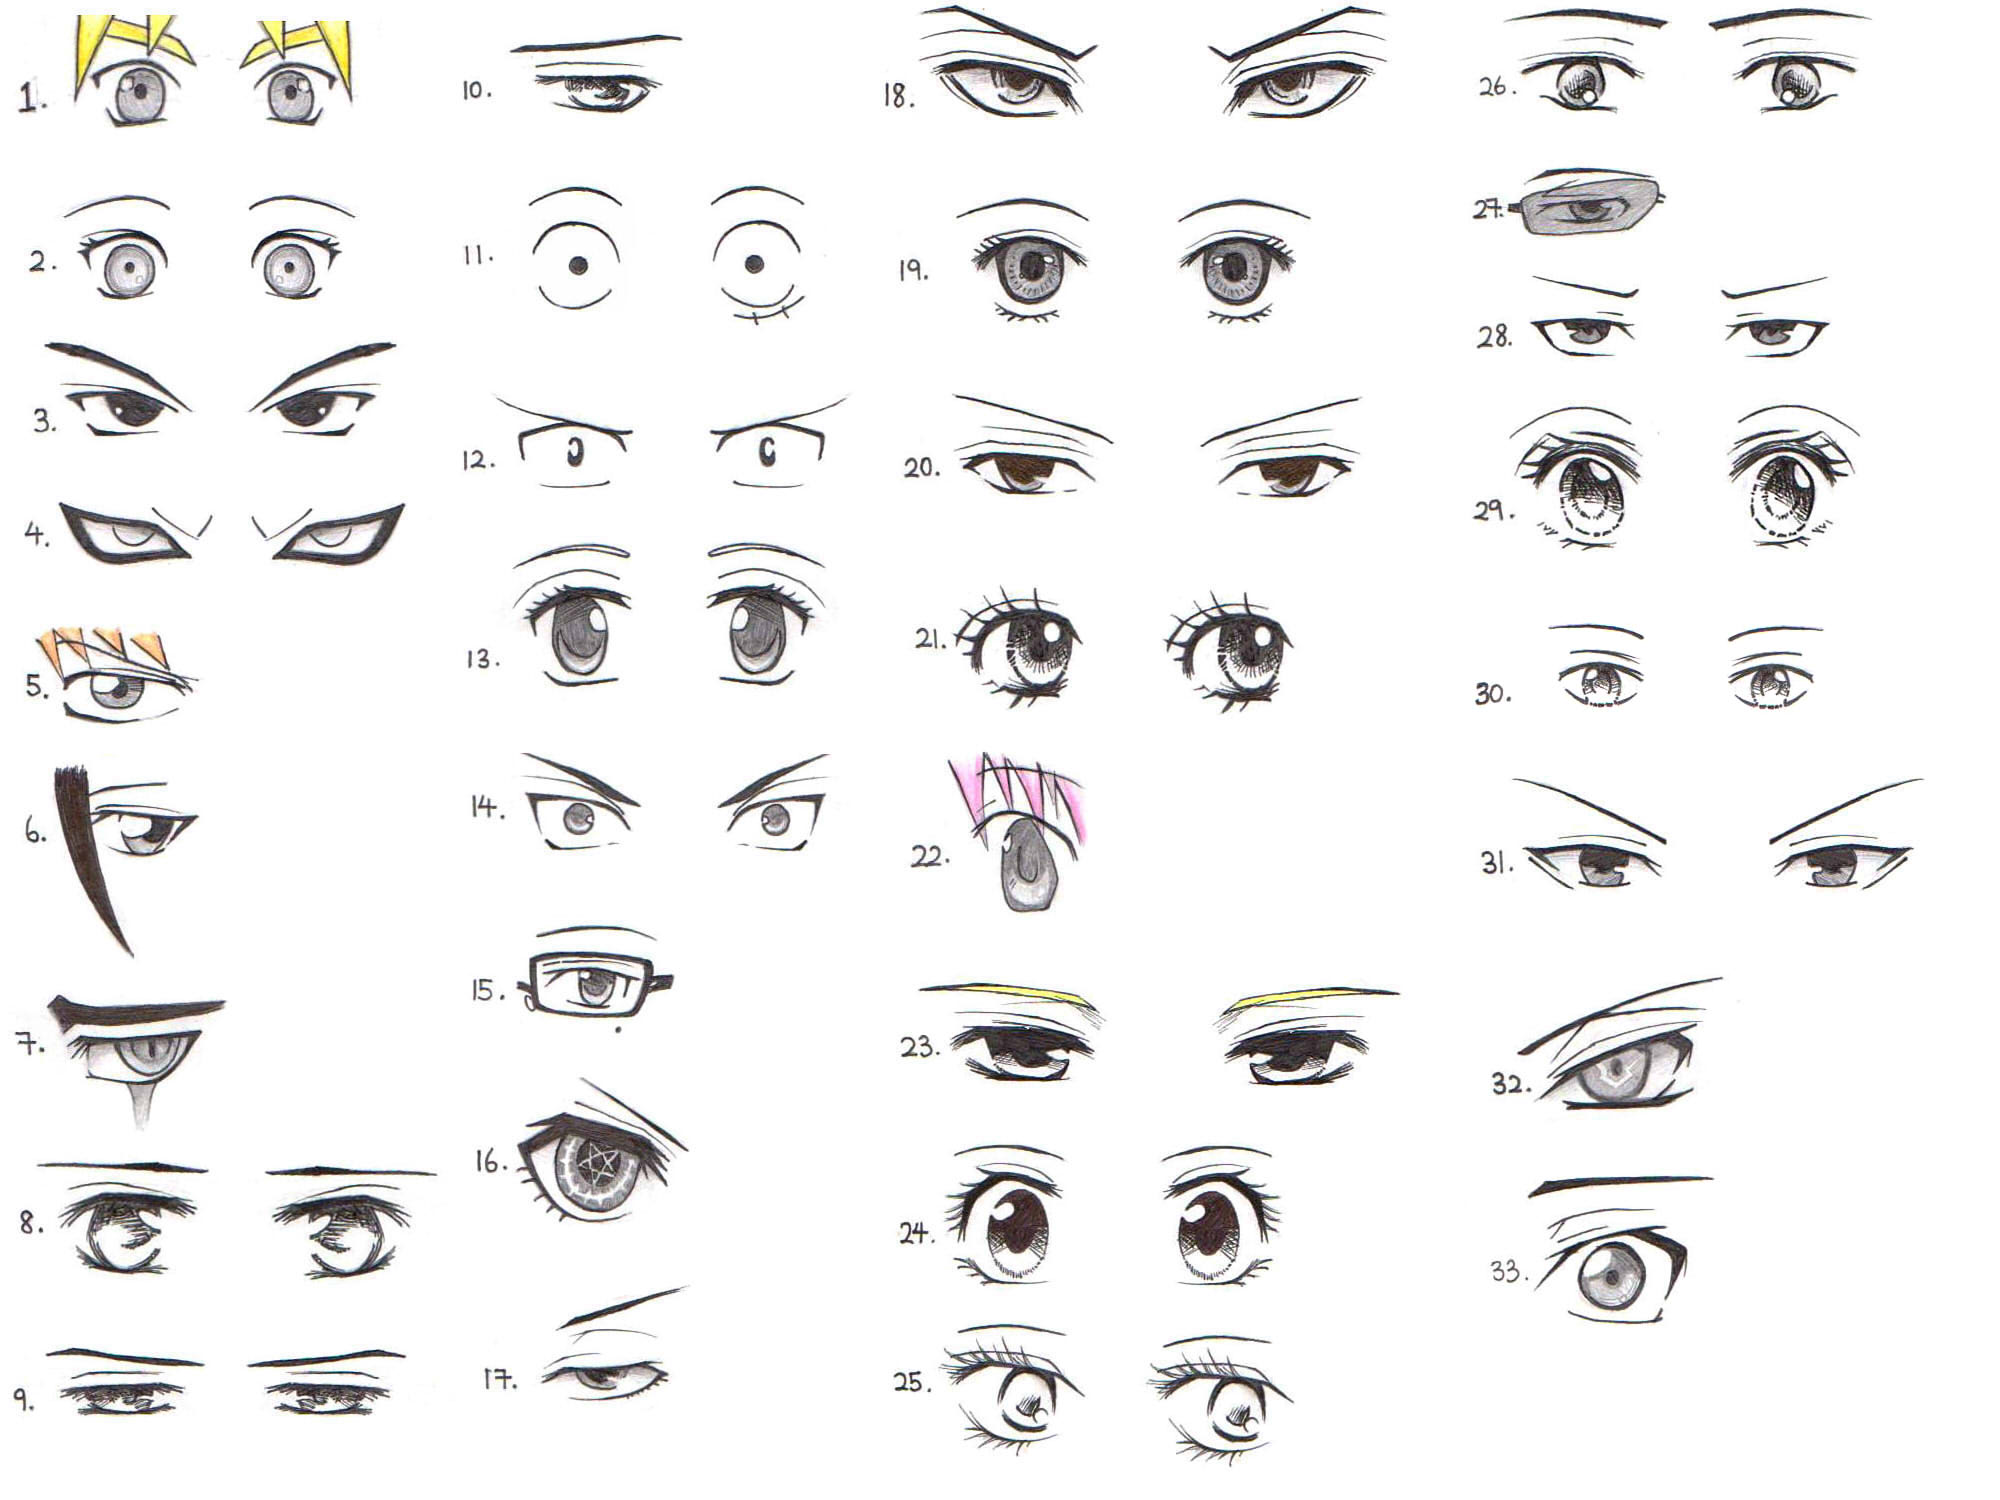 33_manga_and_anime_character_eye_references_by_usui_misaki_sama-d4ld1n0 Trends For Anime Art Eye @koolgadgetz.com.info